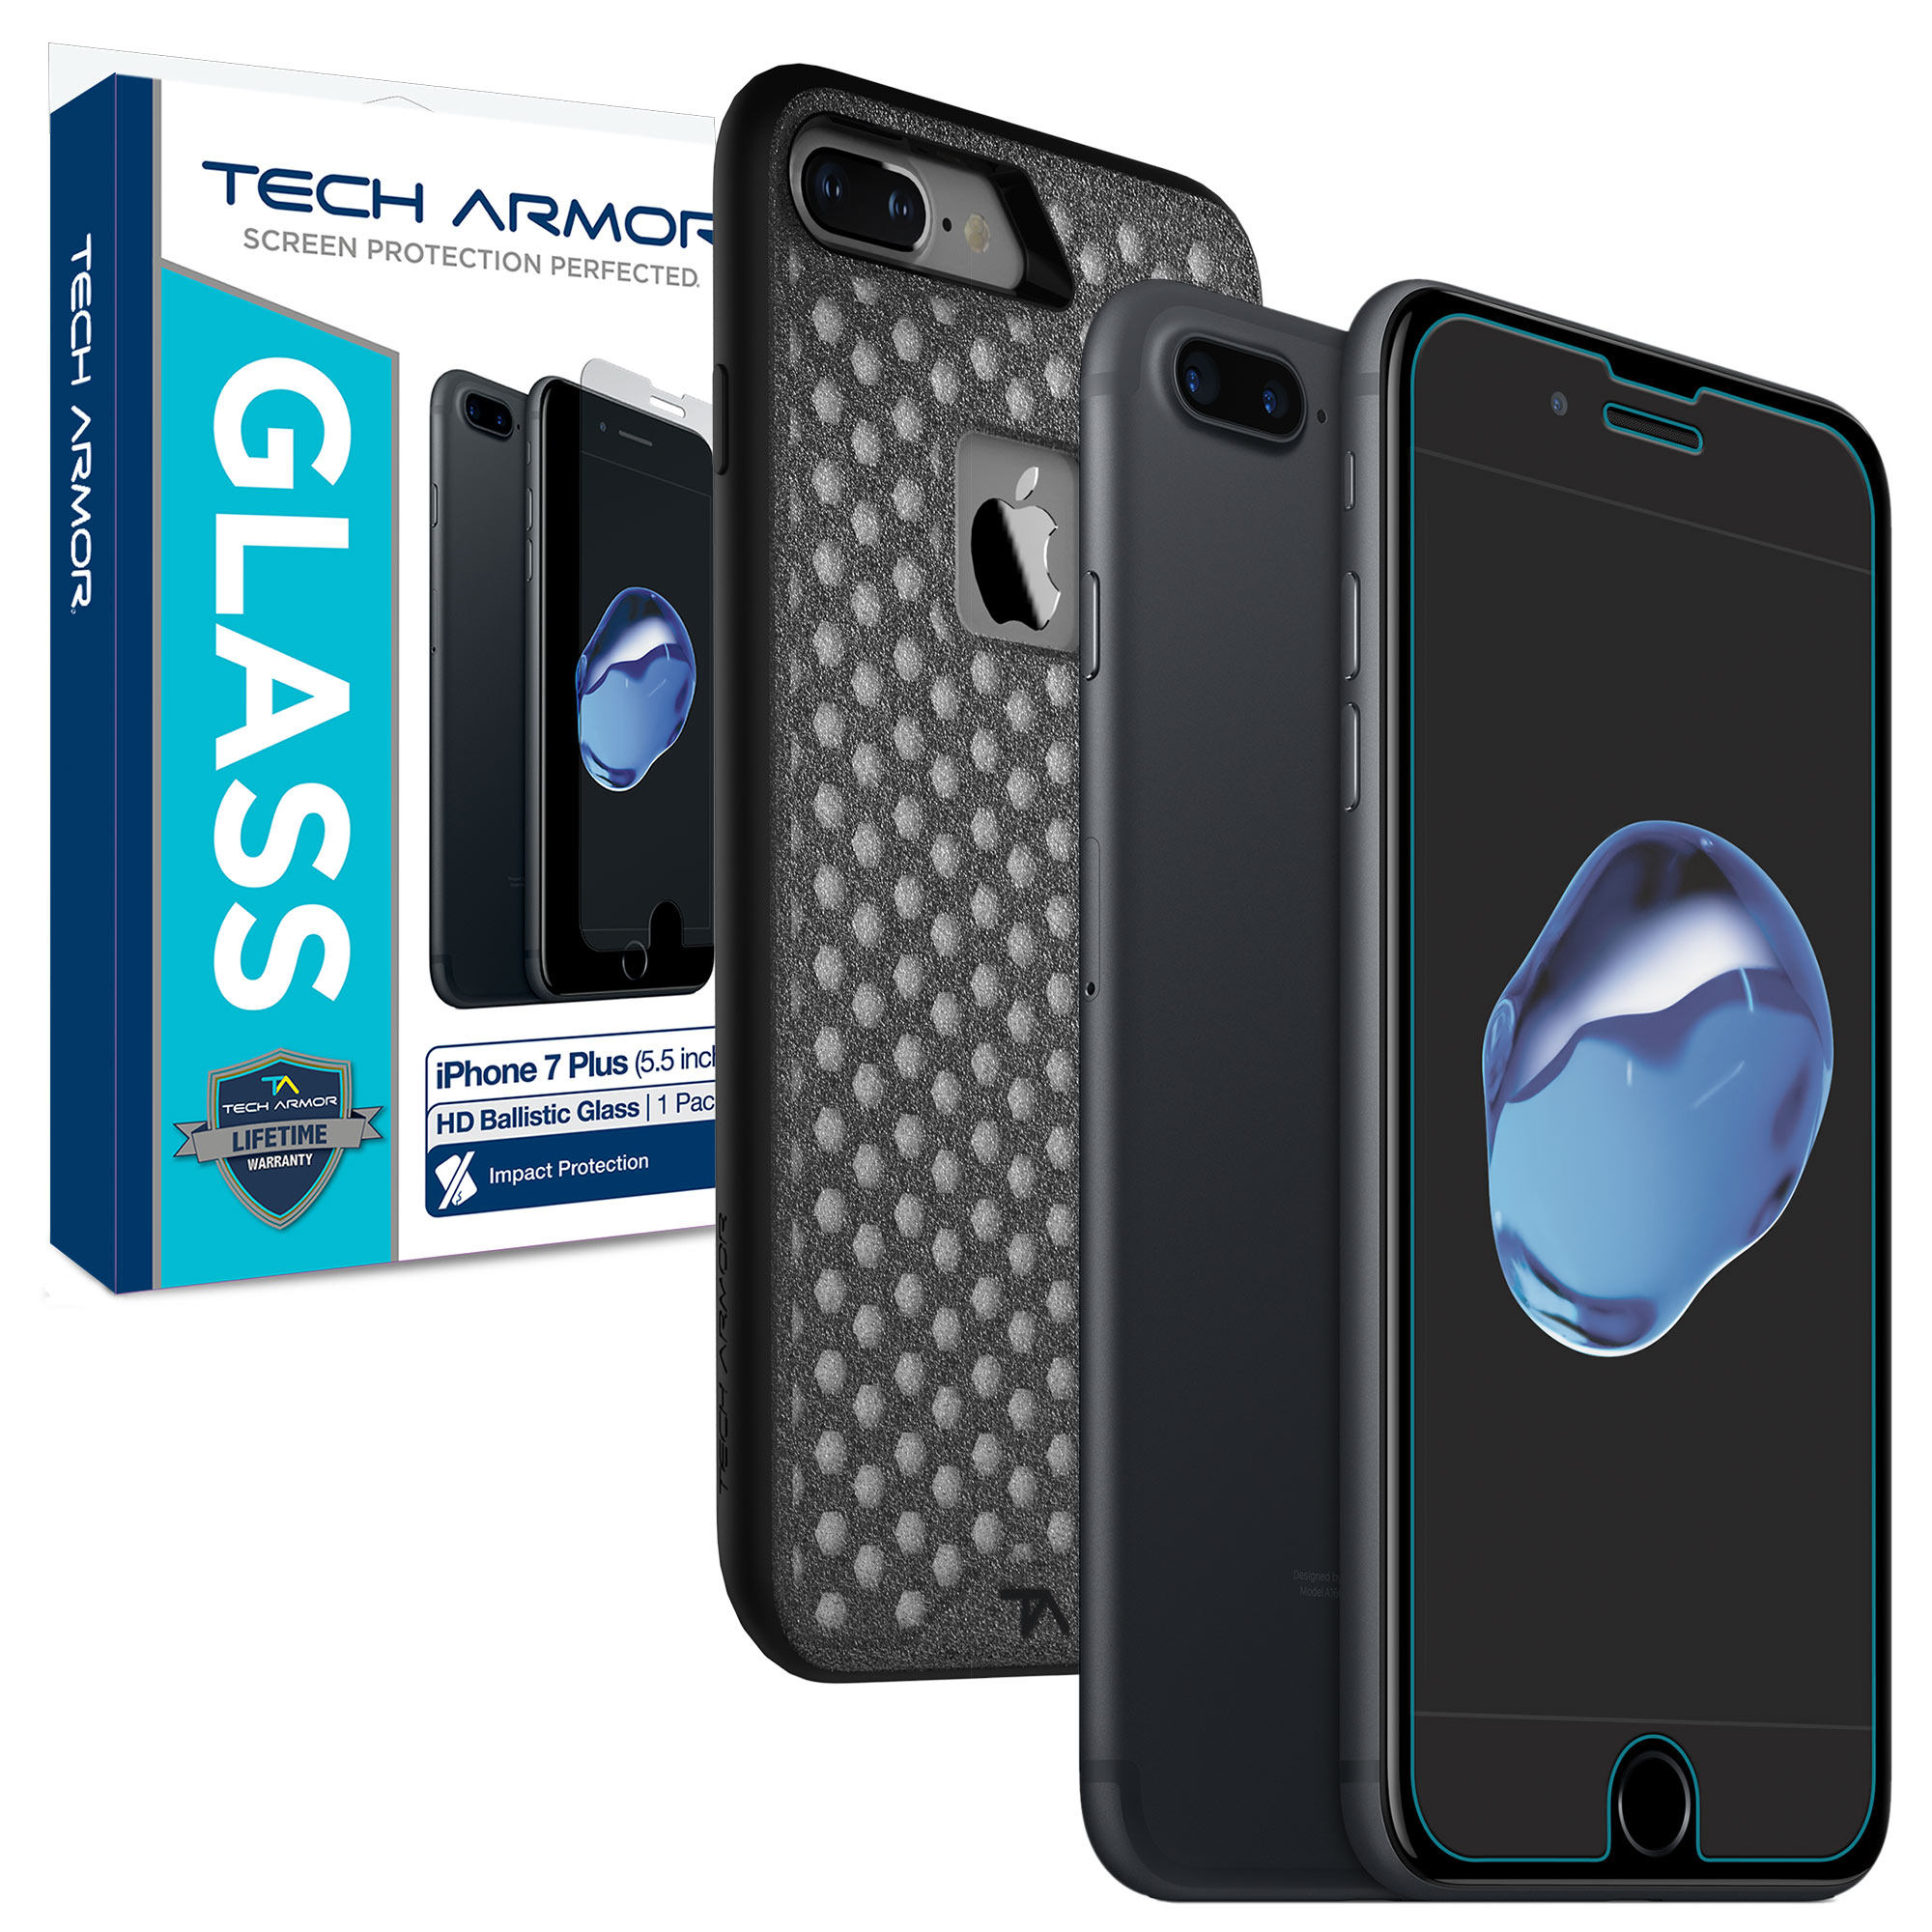 "Tech Armor Apple iPhone 7 Plus (5.5"") Protection Bundle - Glass Screen Protector / Shock Flex Case (Black)"